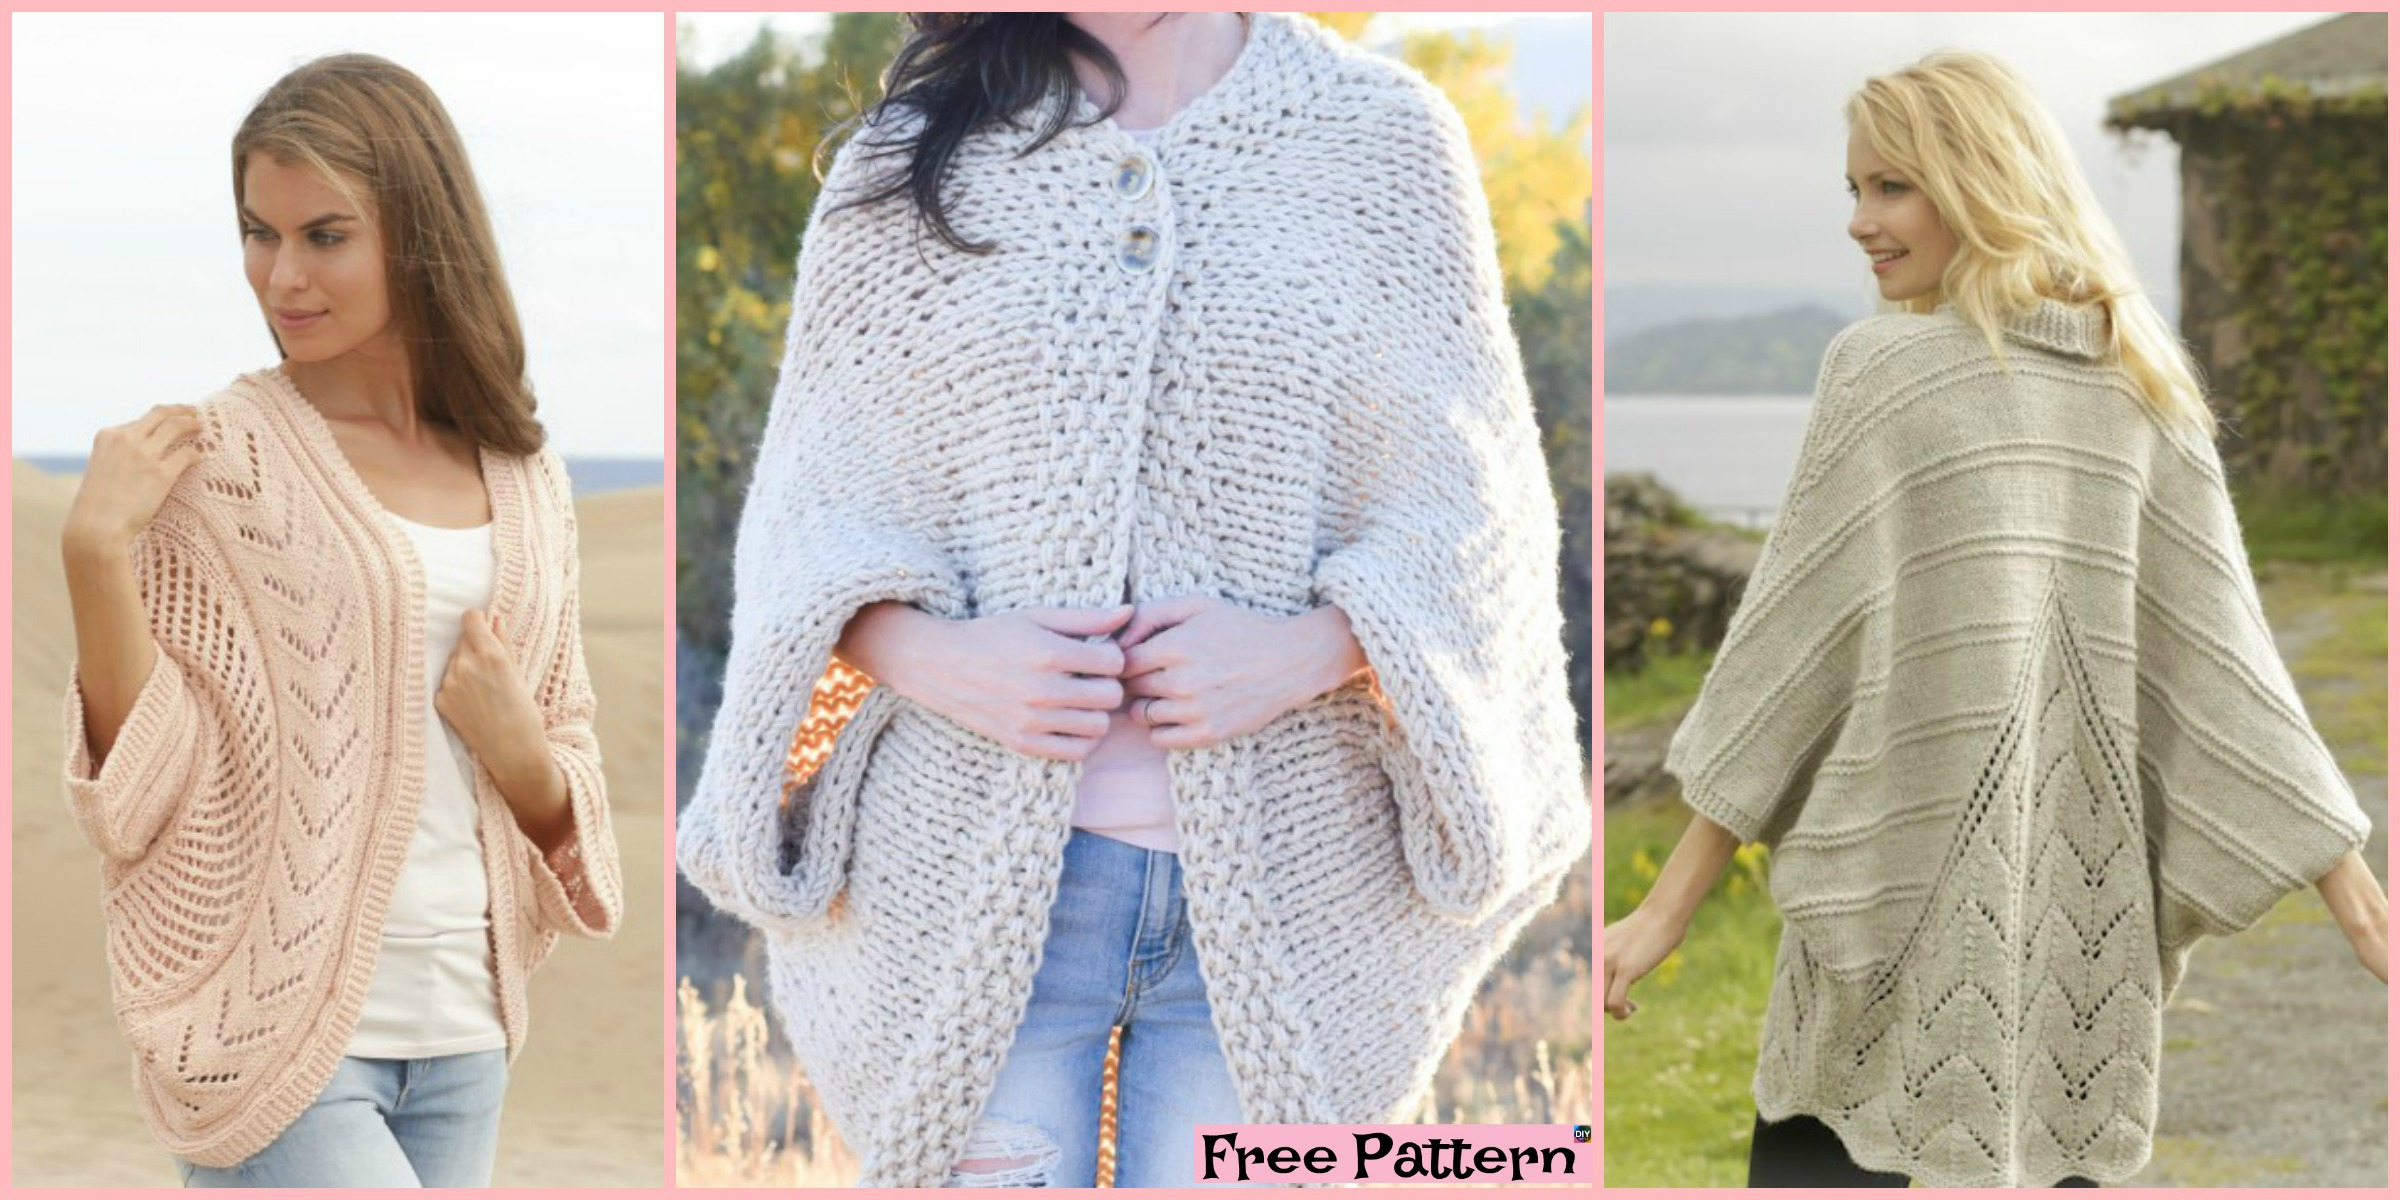 10 Beautiful Knit Blanket Sweater Free Patterns